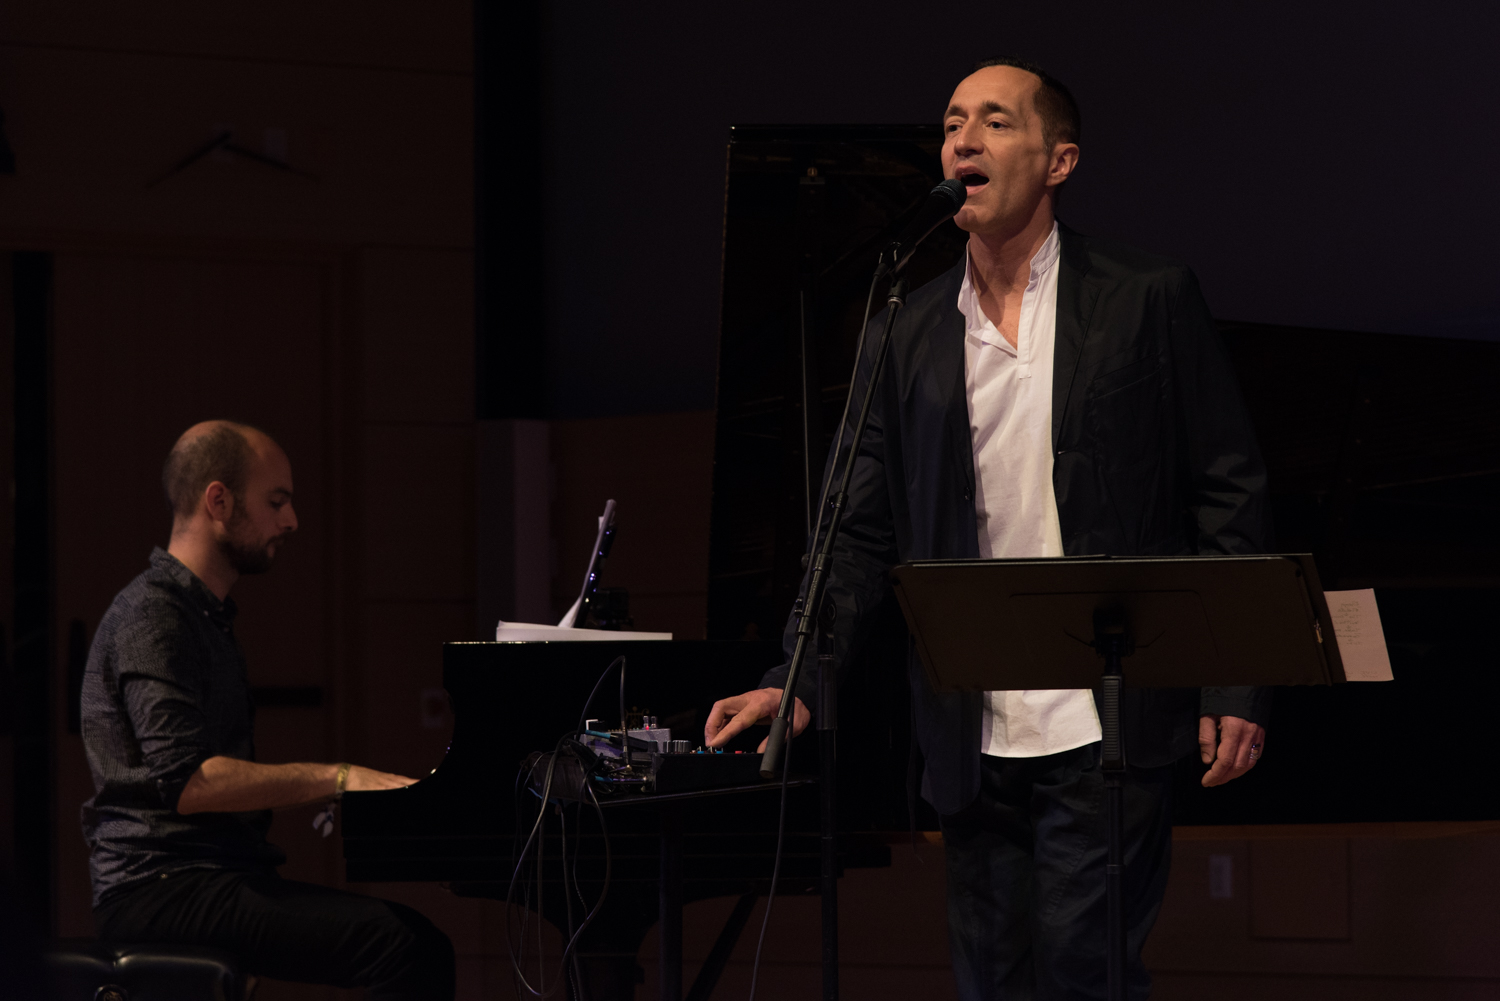 Shai Maestro (piano) and Theo Bleckmann (vocals) performing at New School Tishman Auditorium - ECM Records Stage, January 16.